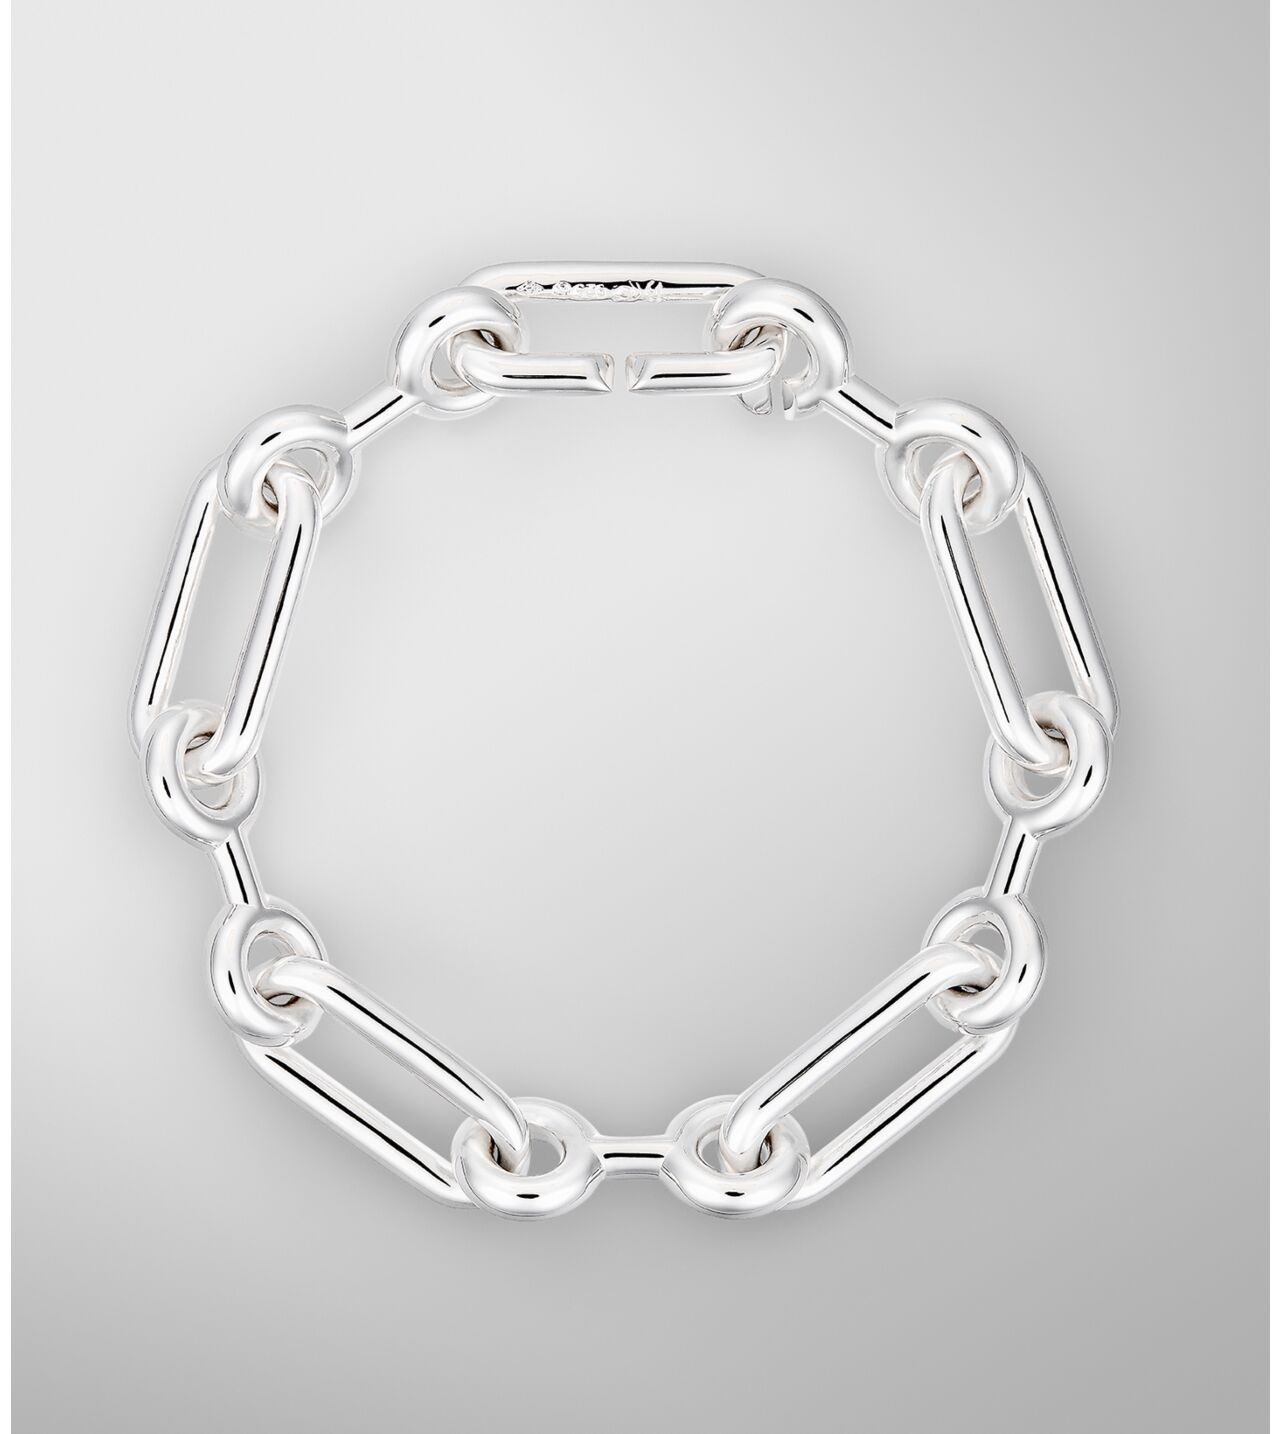 Picture of Byredo Value Chain Silver Bracelet 10 links